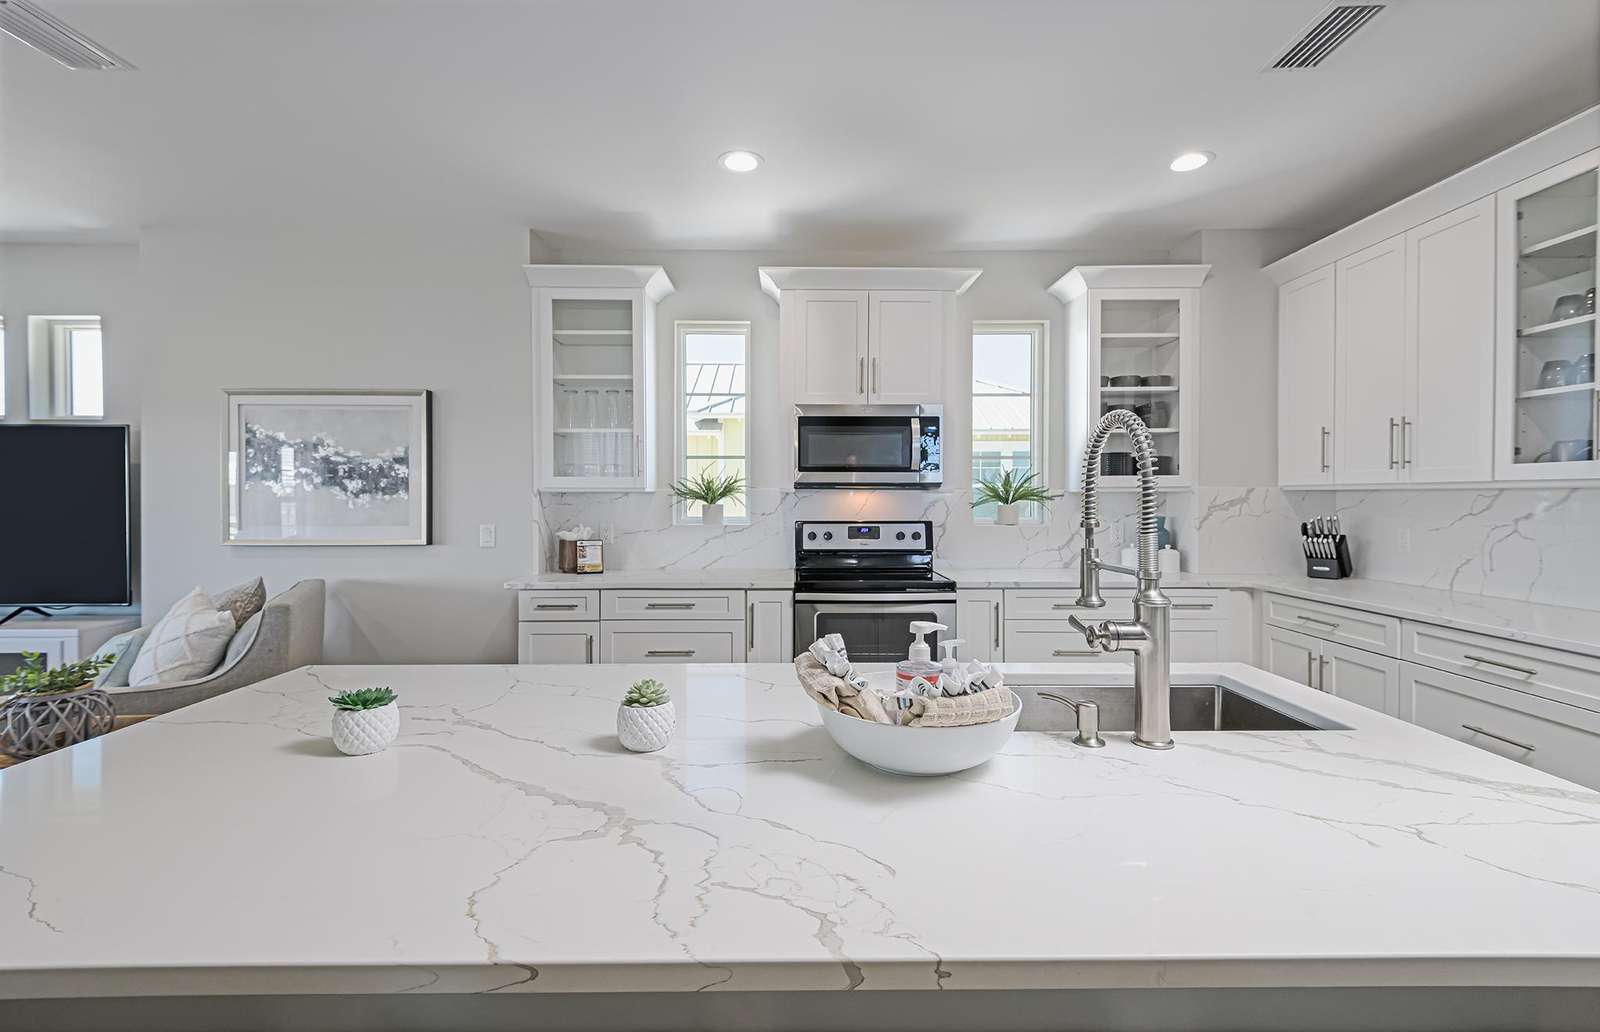 Large kitchen island and counter space!